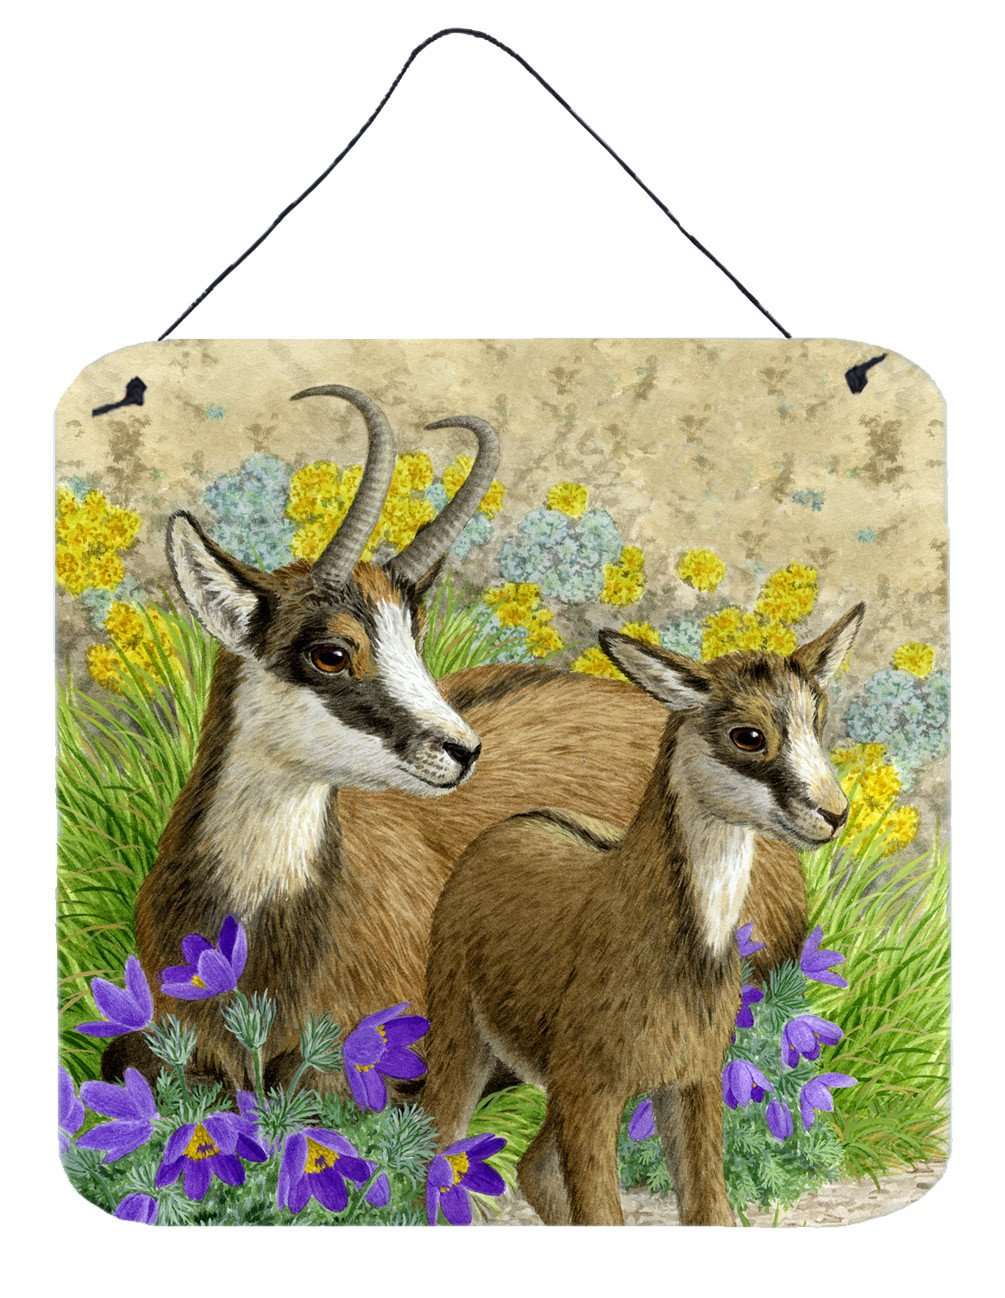 Chamois by Sarah Adams Wall or Door Hanging Prints ASAD0789DS66 - the-store.com